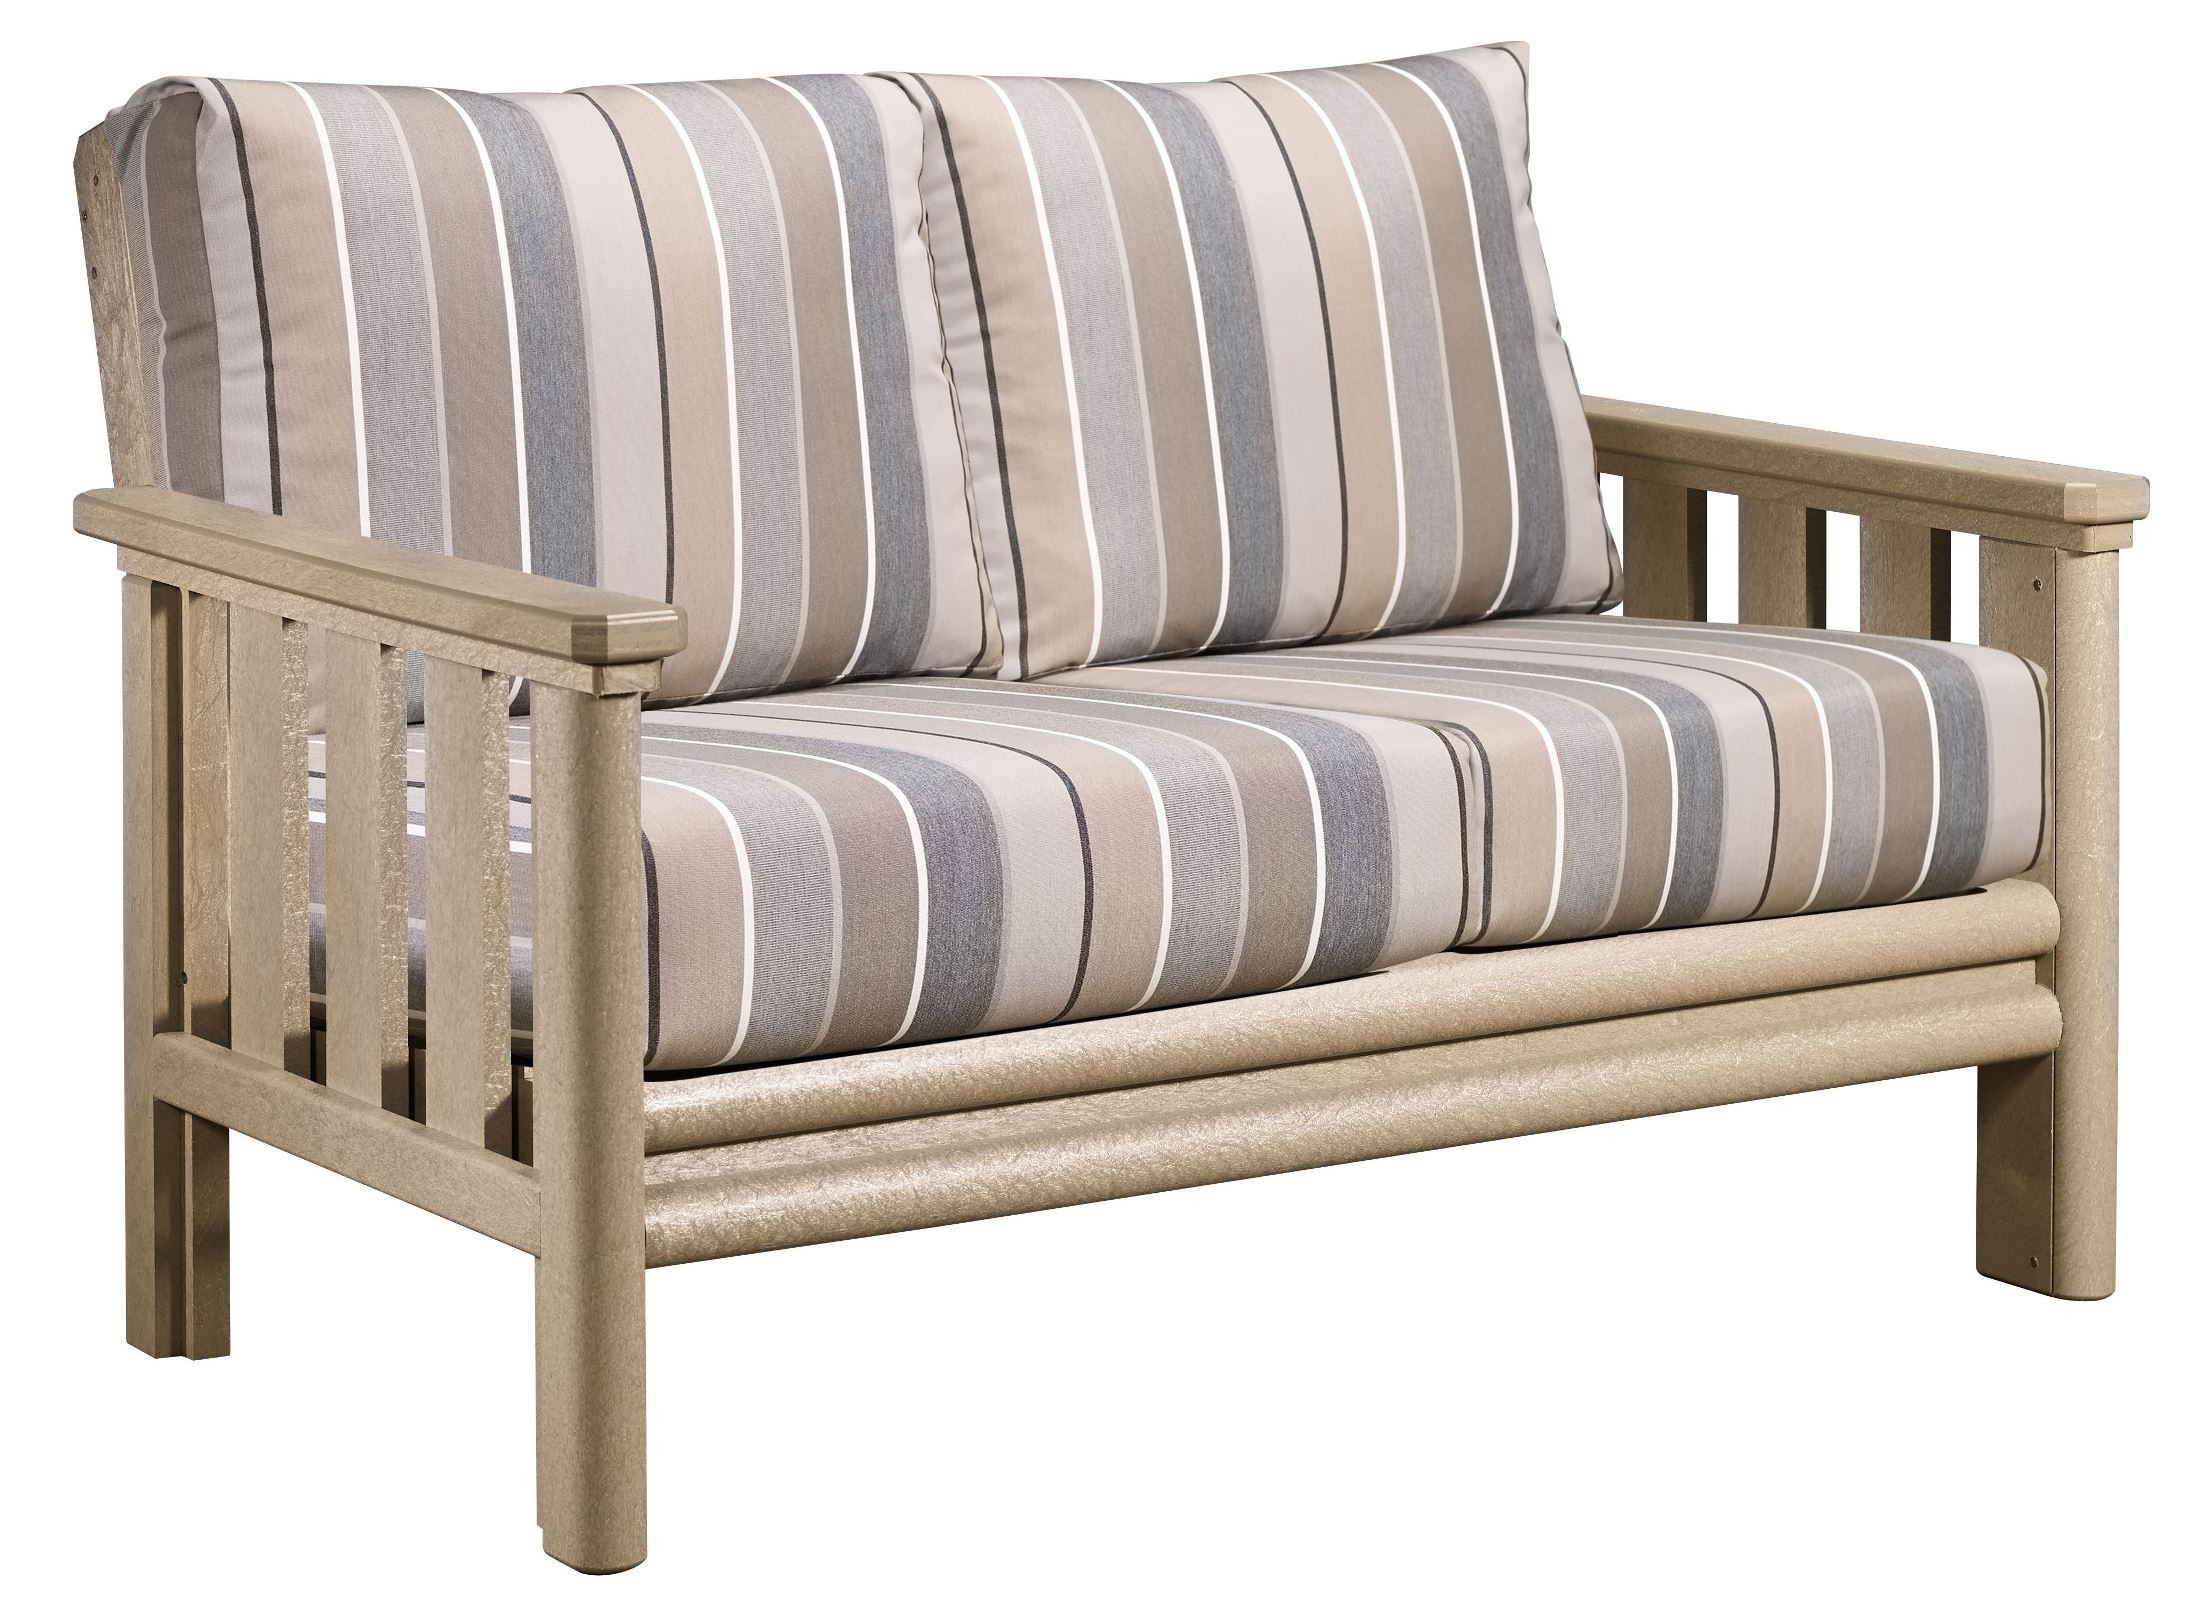 Stratford Beige Loveseat With Milano Charcoal Sunbrella Cushions From Cr Plastic Ds142 07 56079